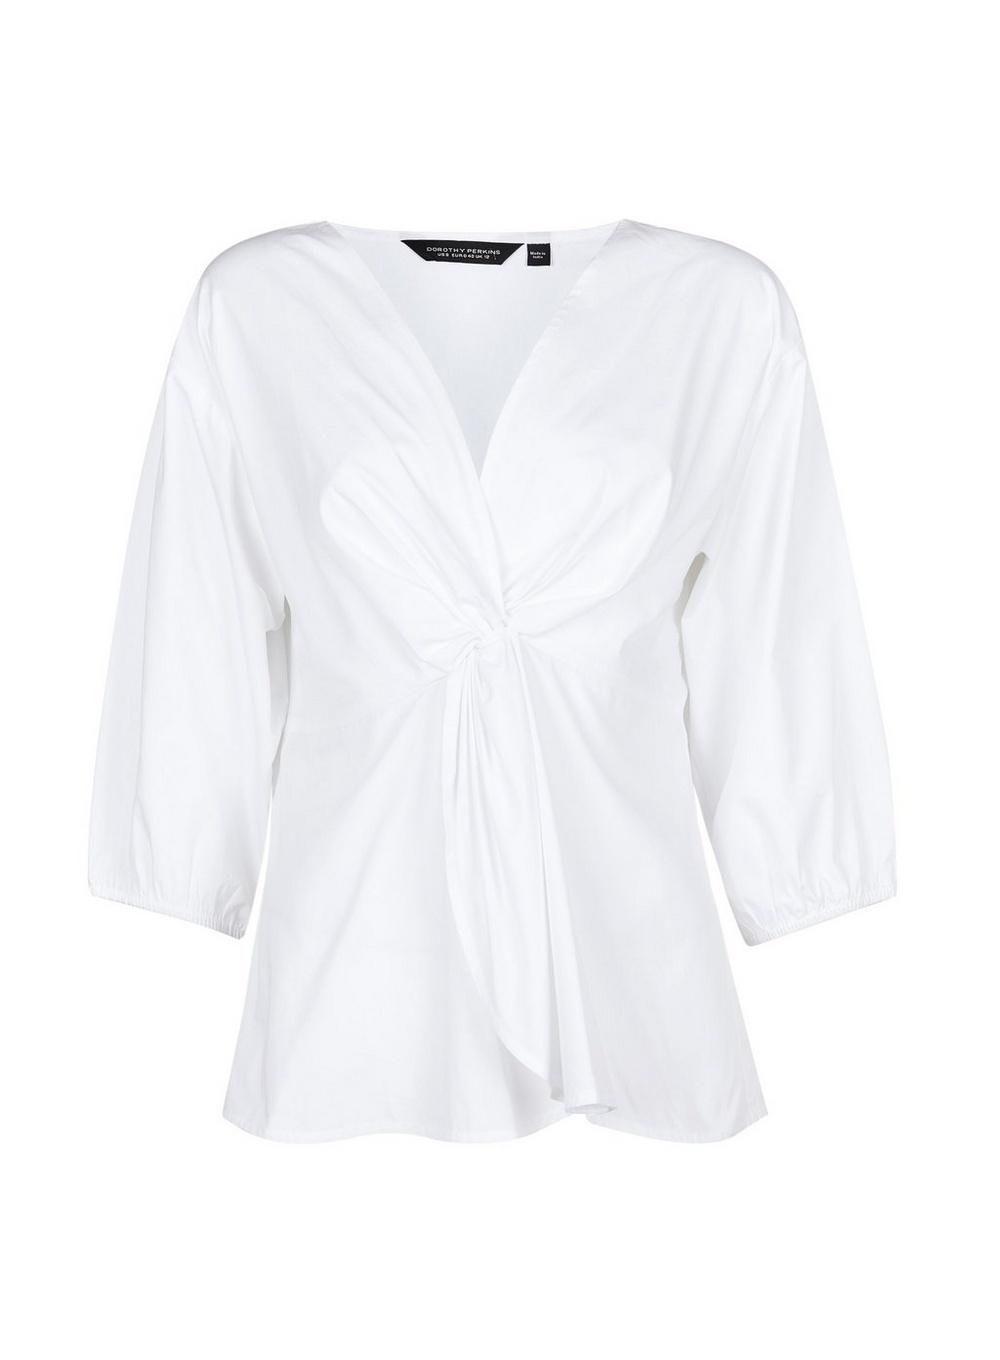 3770c8bd592f36 Lyst - Dorothy Perkins White Peplum Top in White